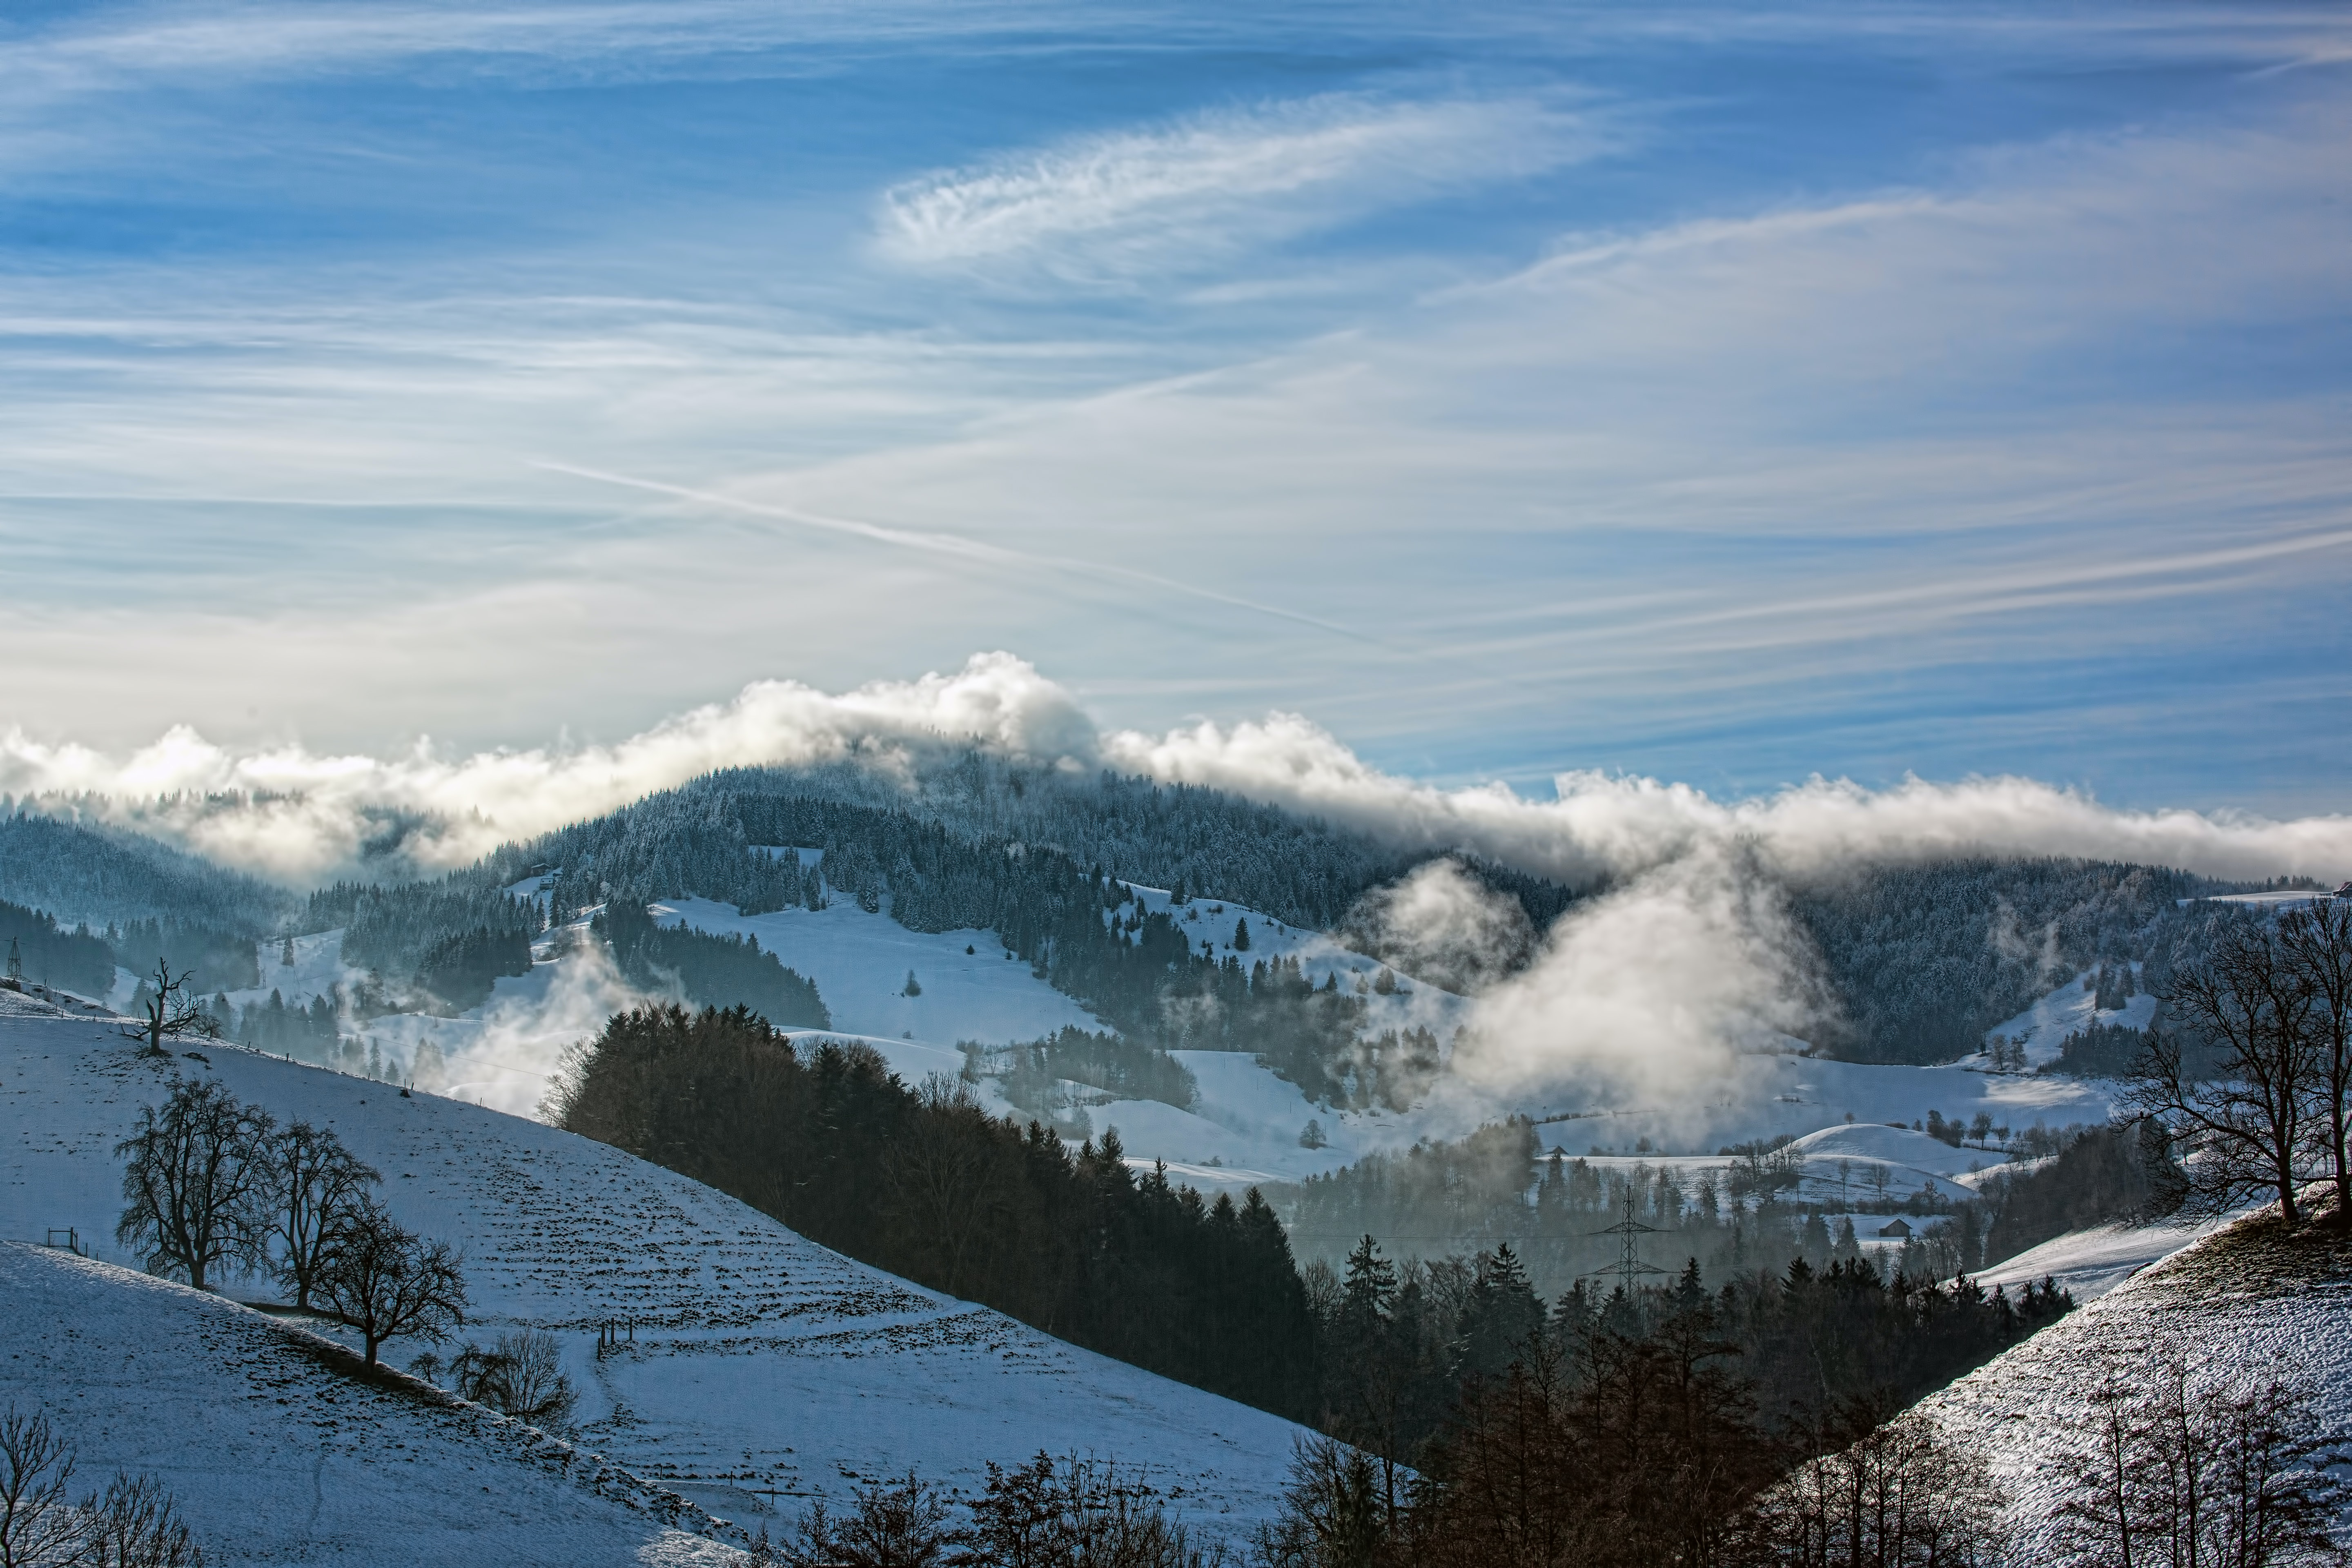 Clouds of fog over snowy forests on rolling hills